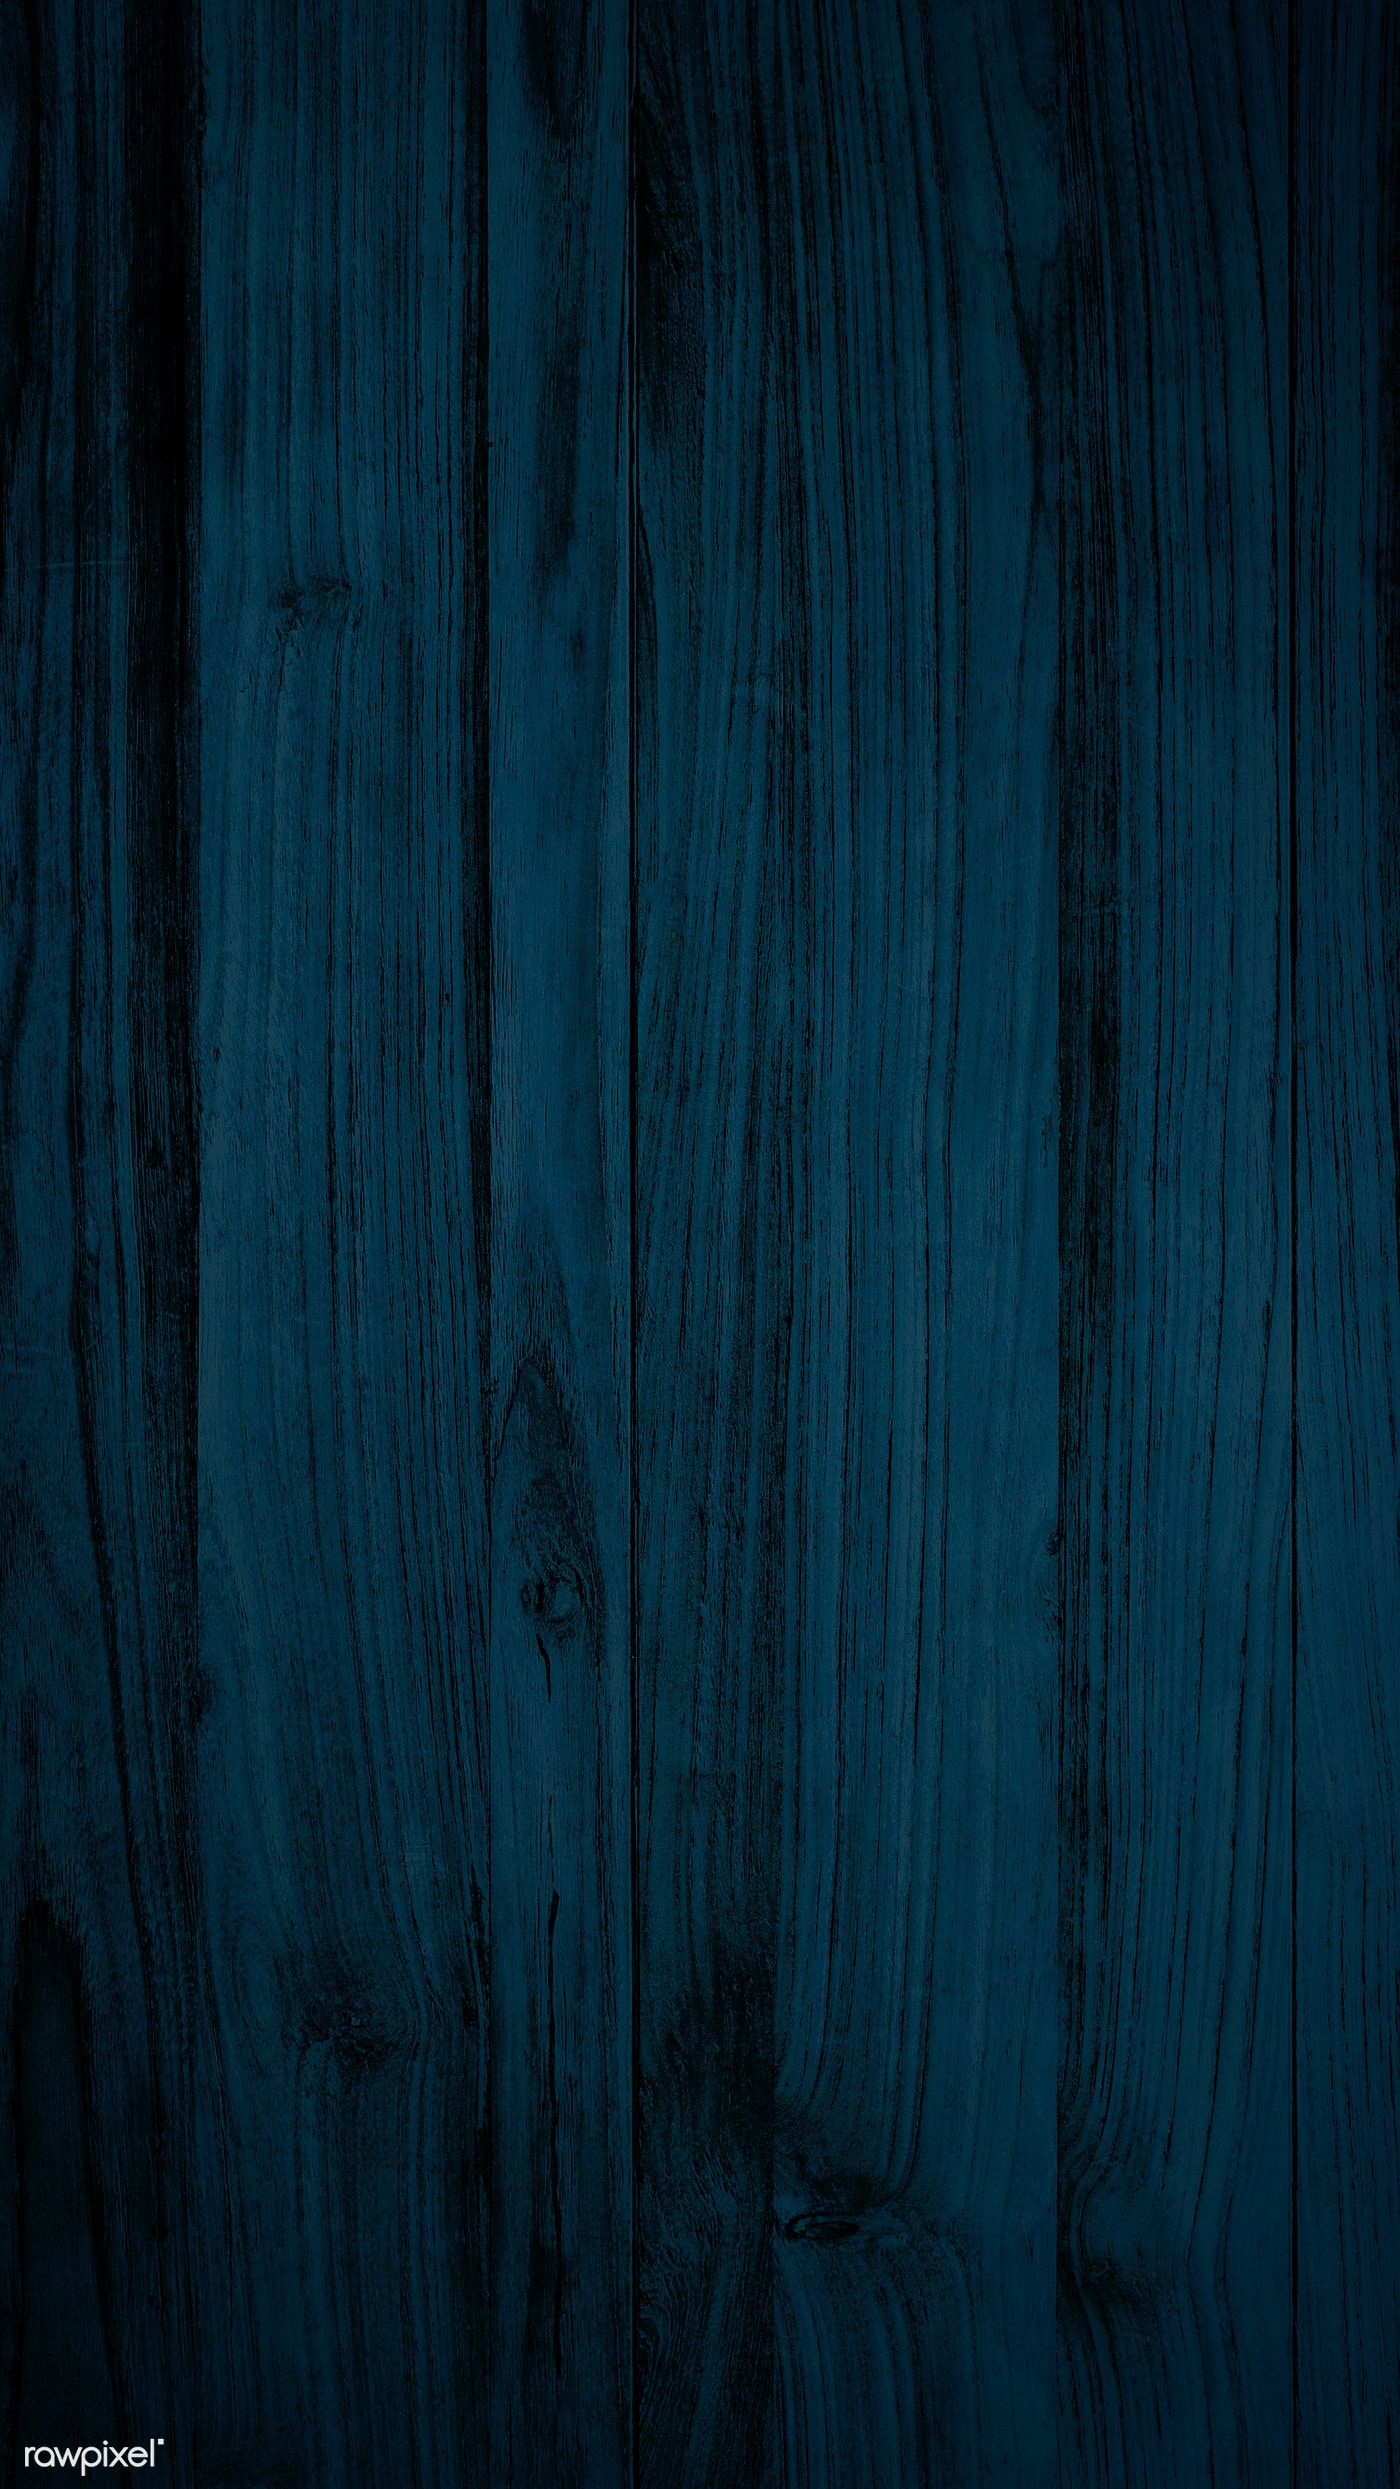 Blue Wood Textured Mobile Wallpaper Background Free Image By Rawpixel Com Manotang Wood Texture Wood Texture Background Wood Iphone Wallpaper